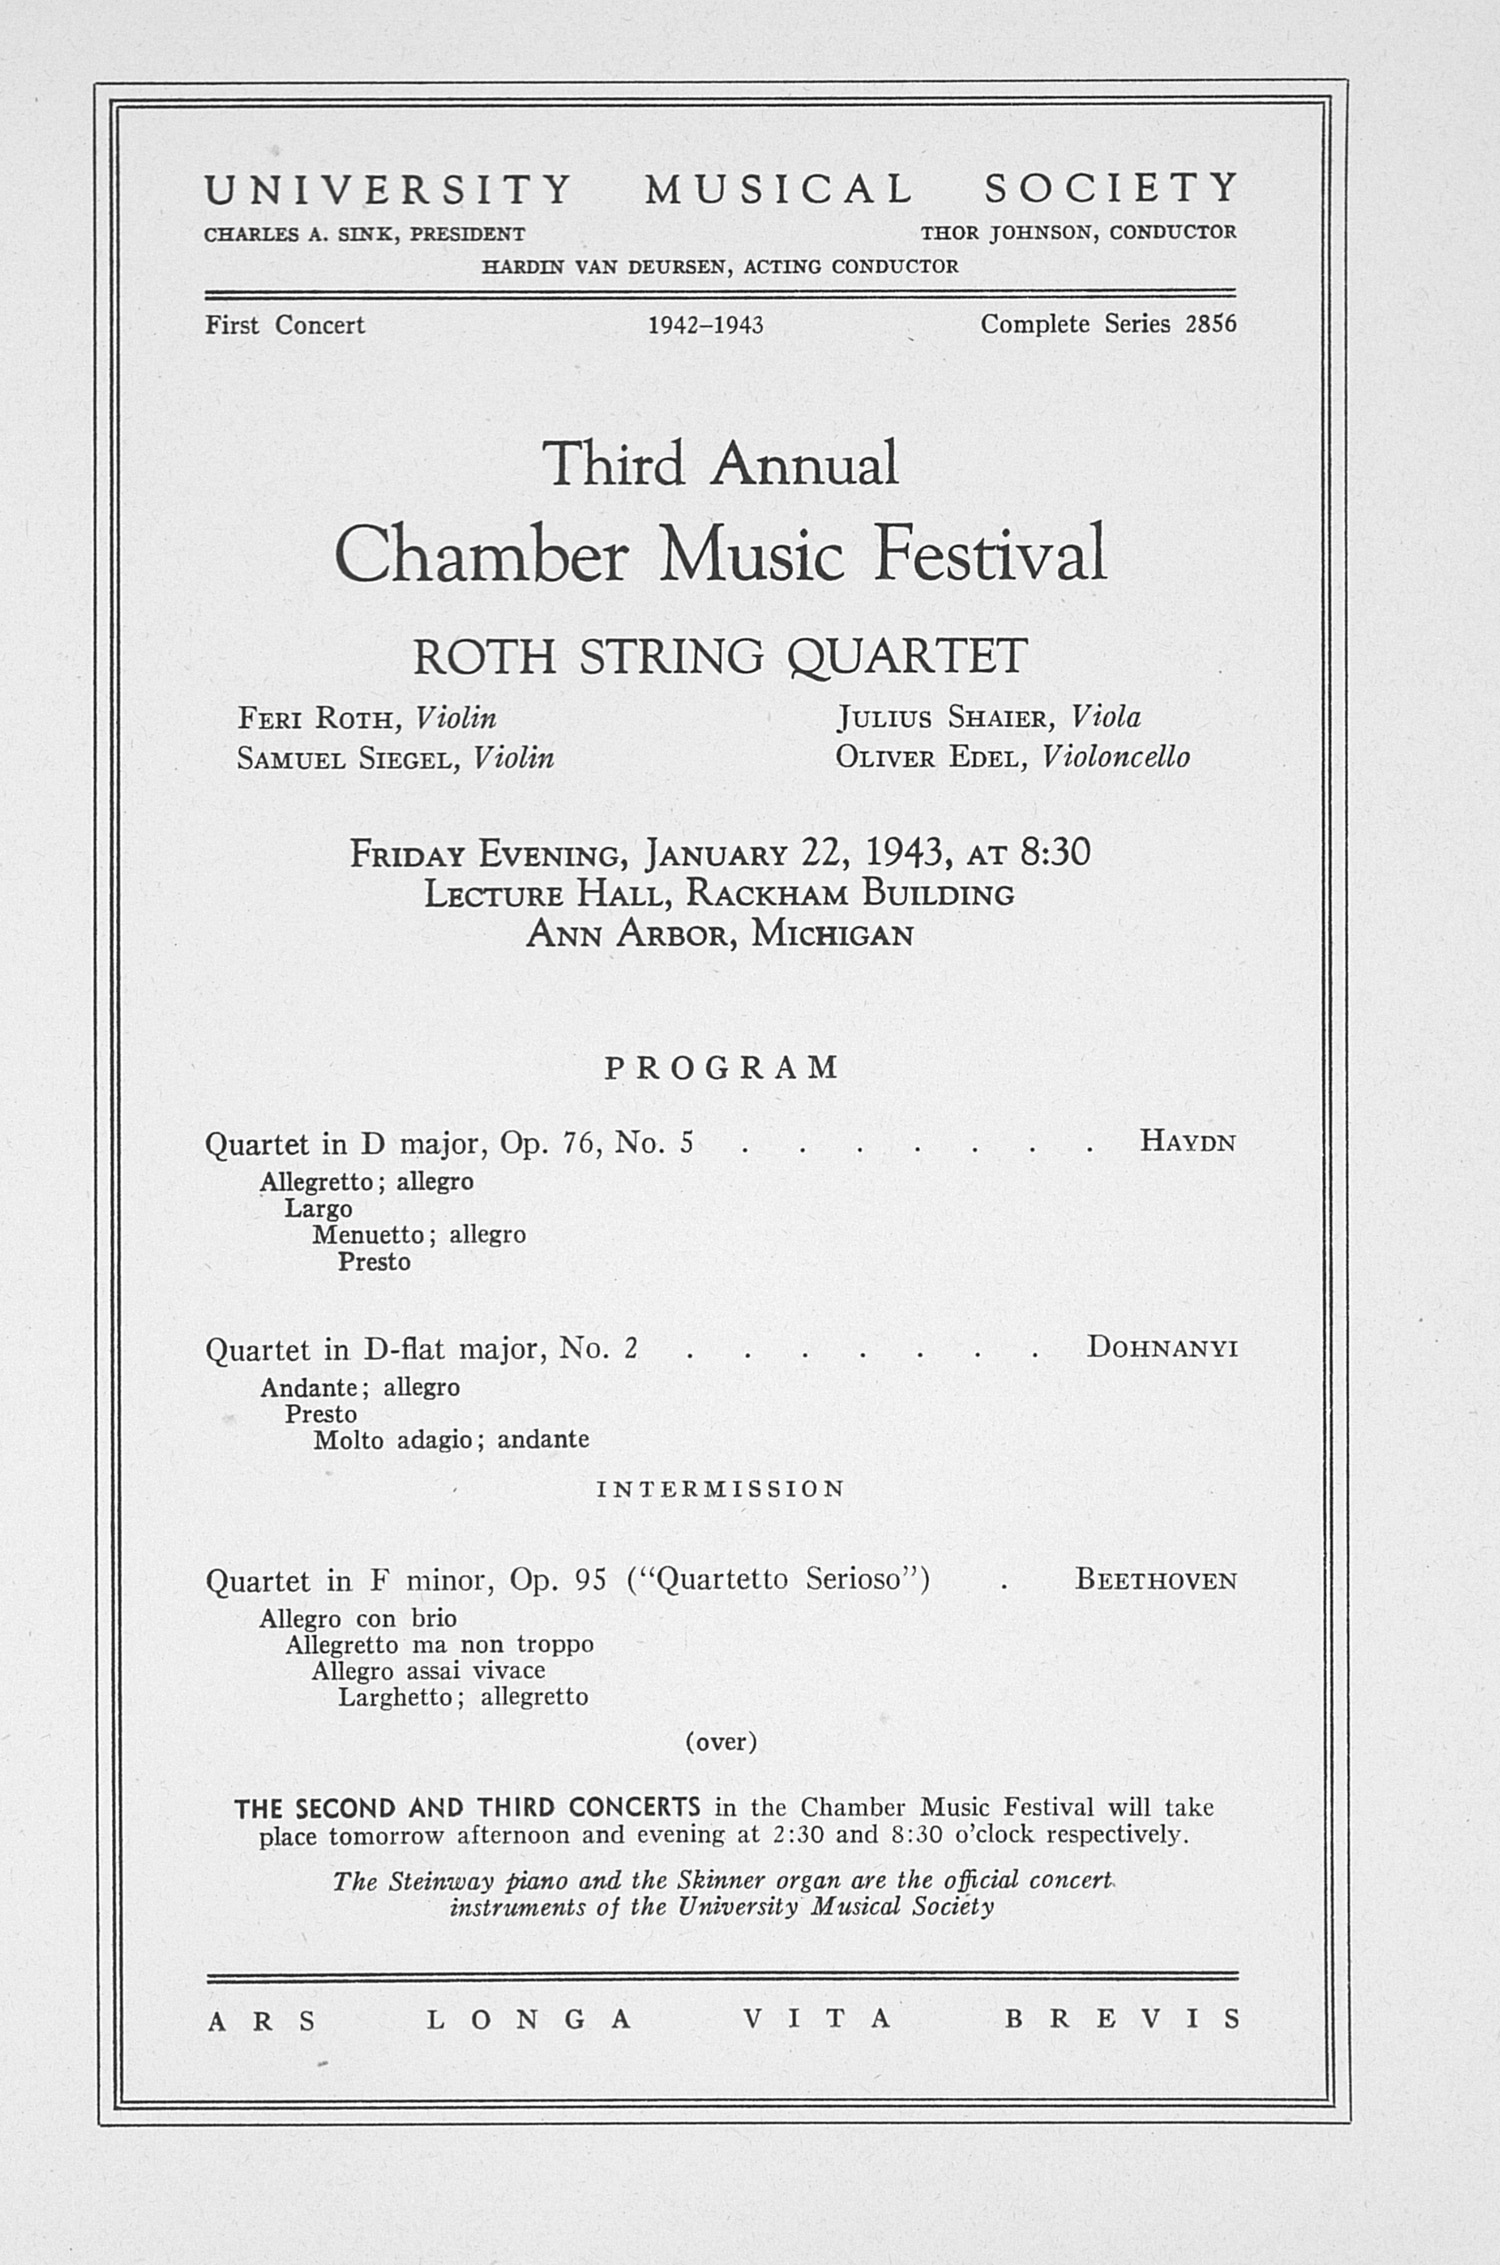 UMS Concert Program, January 22, 1943: Third Annual Chamber Music Festival -- Roth String Quartet image